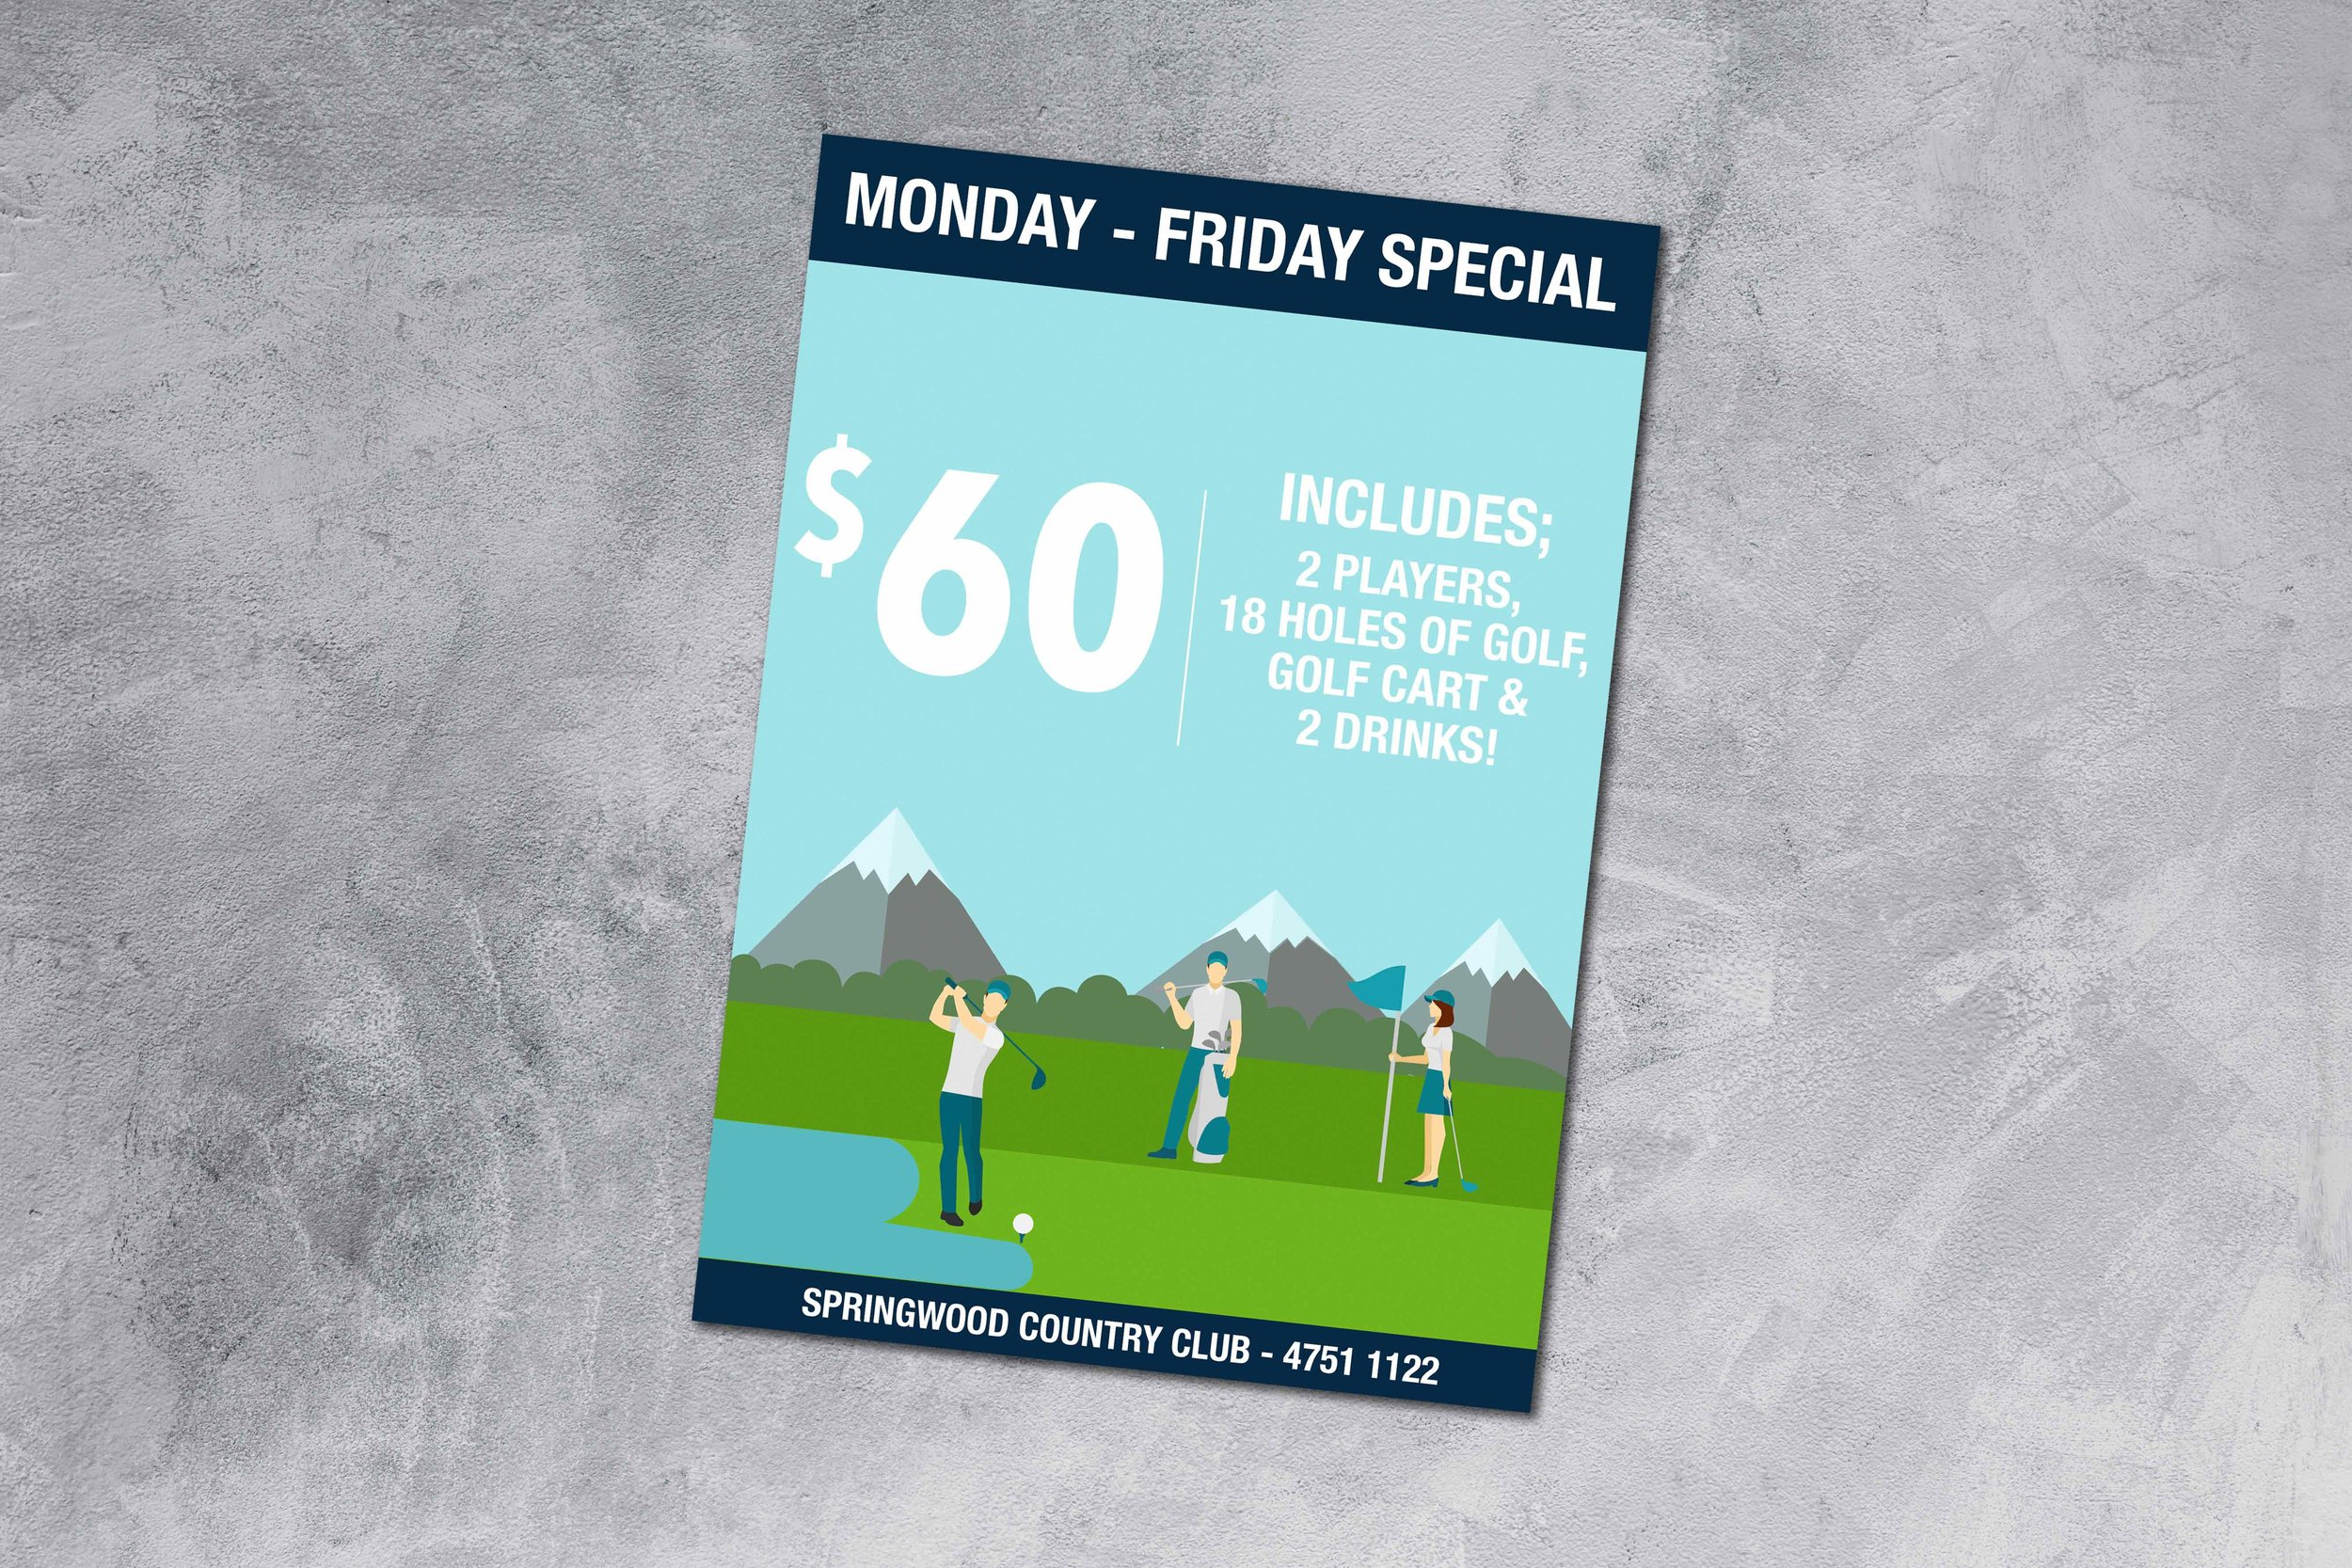 The Monday - Friday Golf Special - Springwood Country Club has this ultimate Monday to Friday Special for only $60 you can get 2 players paid for, the full 18 holes of golf, golf cart AND 2 drink vouchers! What more could you want?